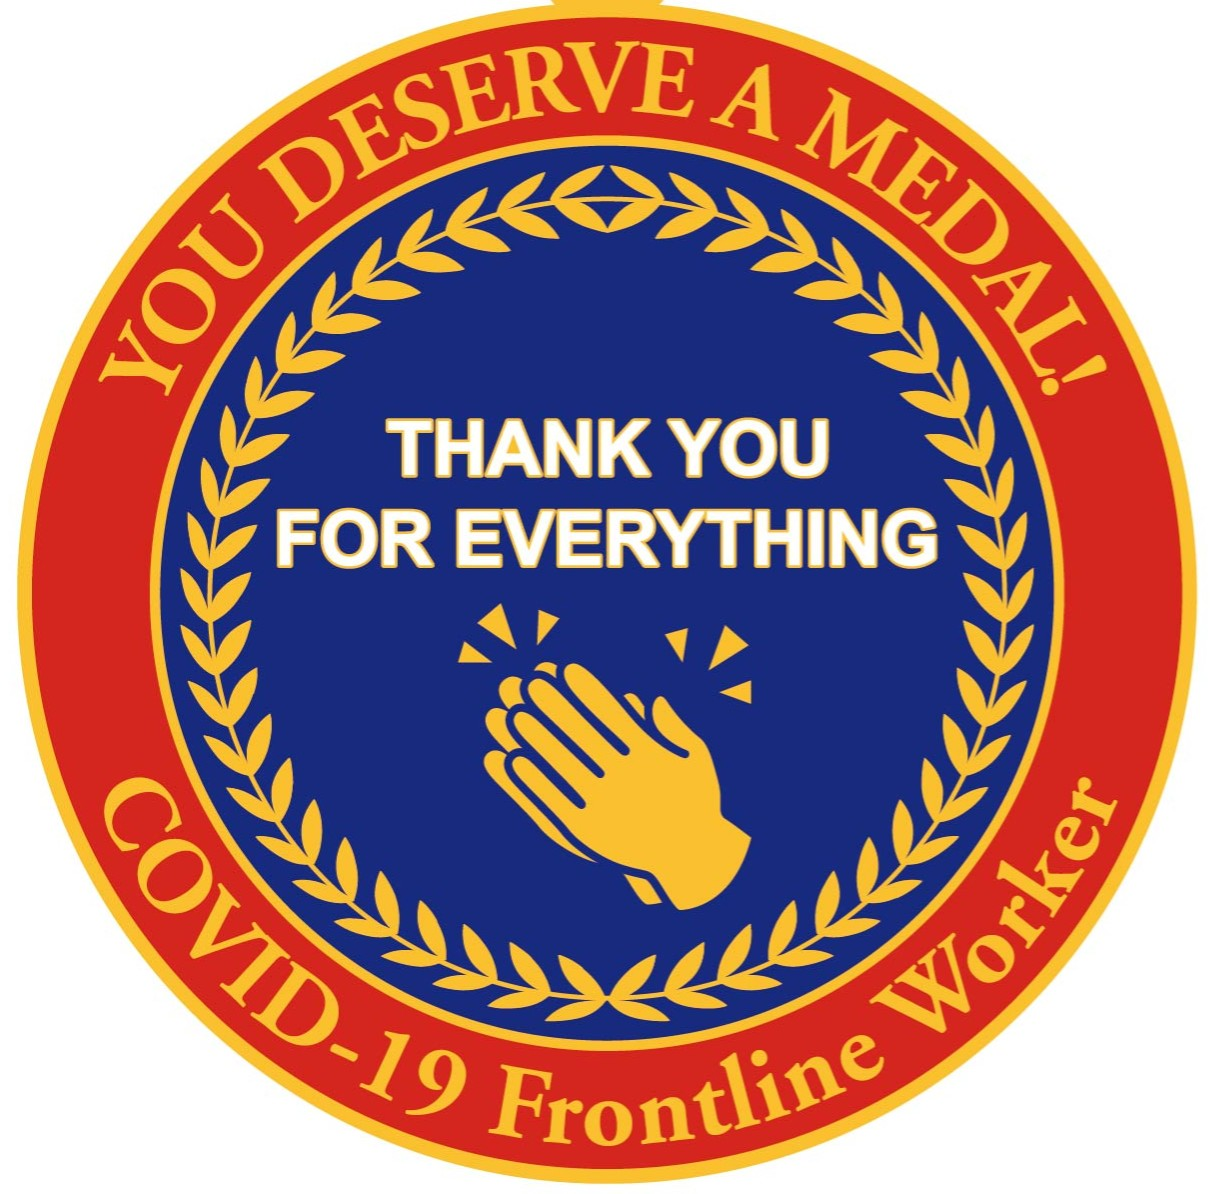 Frontline Worker NHS Thank You Badge